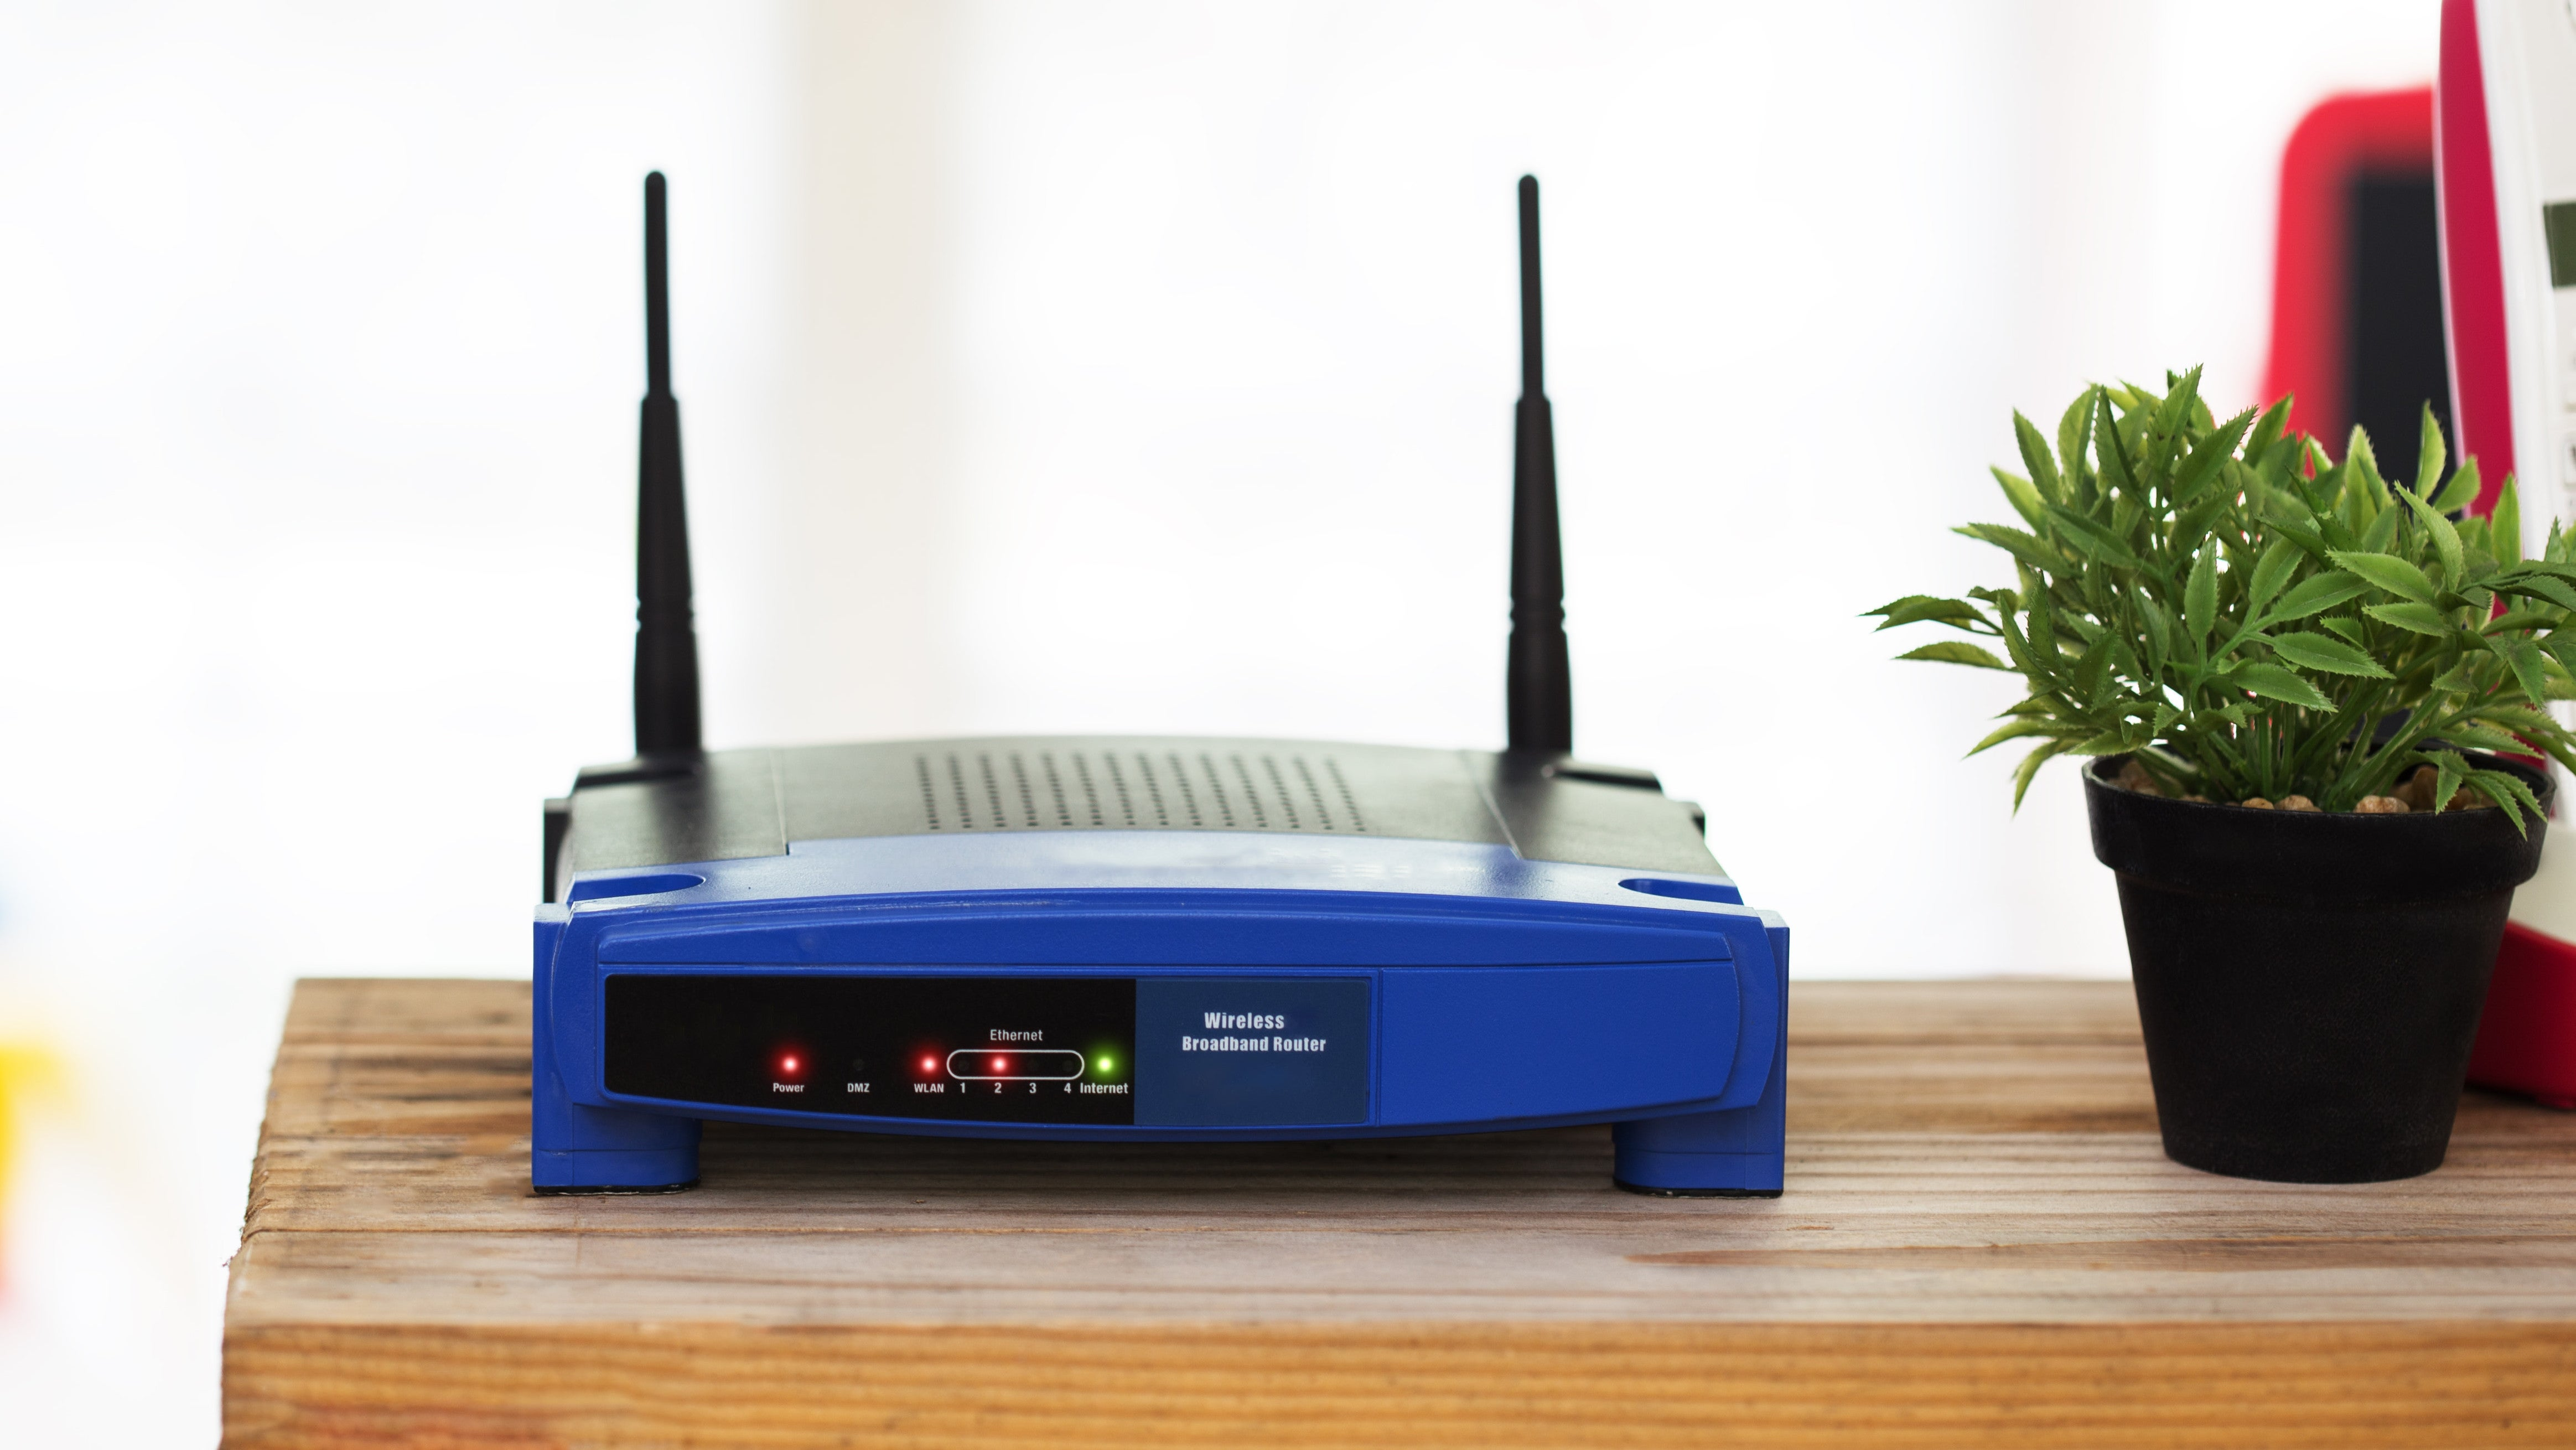 Know Your Network: Router Hardware 101